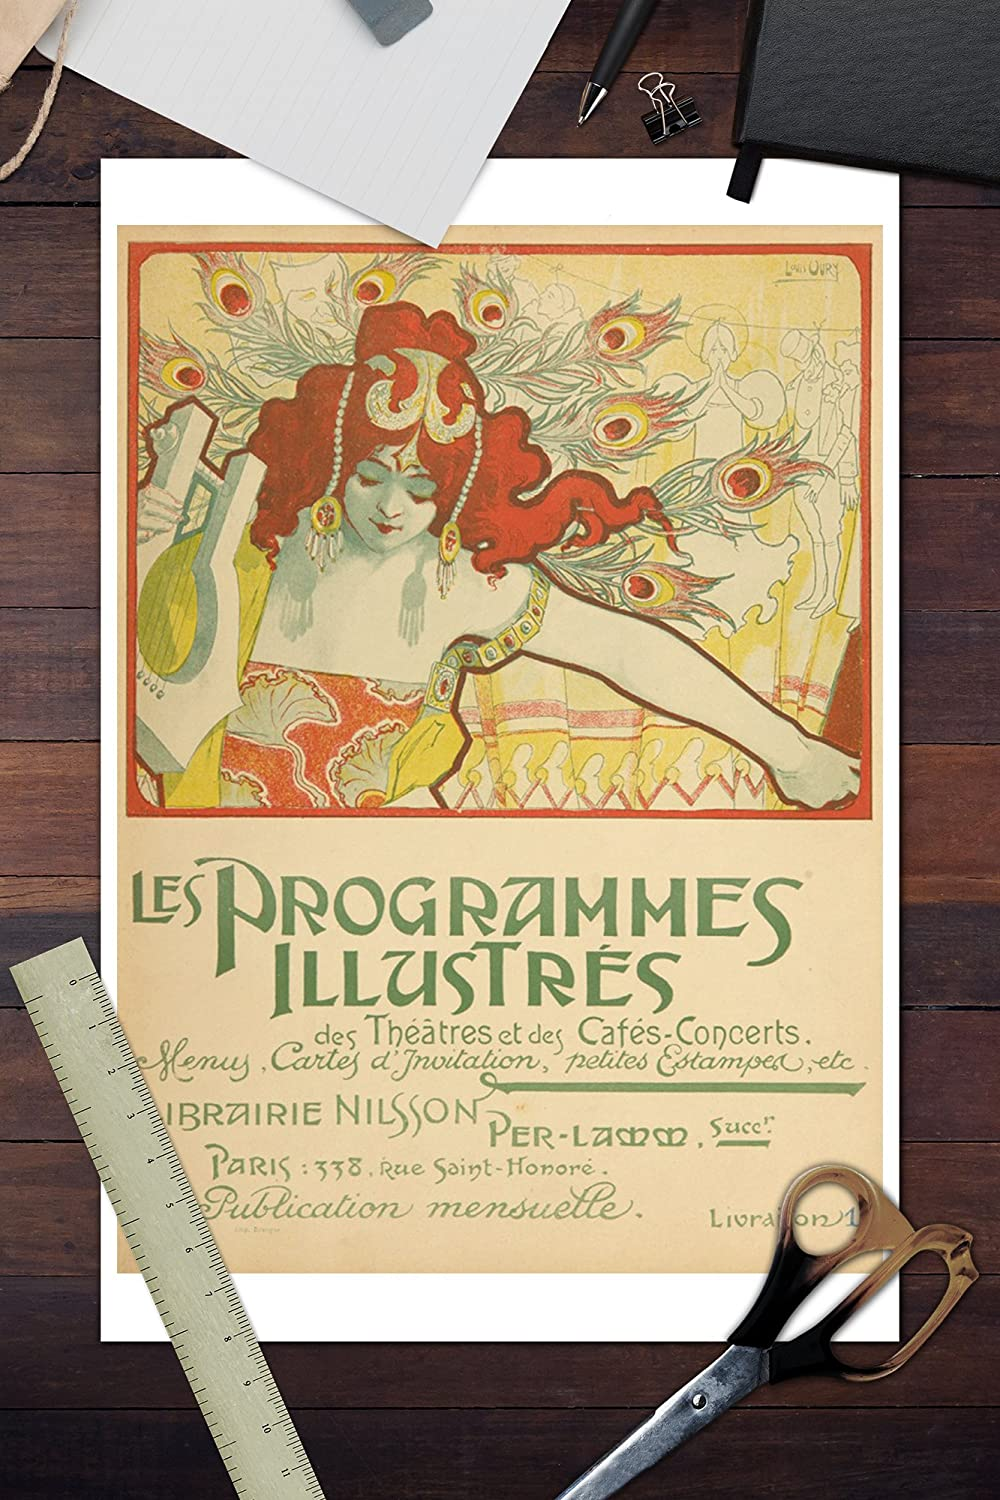 Amazon.com: Les Programmes Illustres, by Ernest Maindron Vintage Poster France c. 1897 (9x12 Art Print, Wall Decor Travel Poster): Arts, Crafts & Sewing